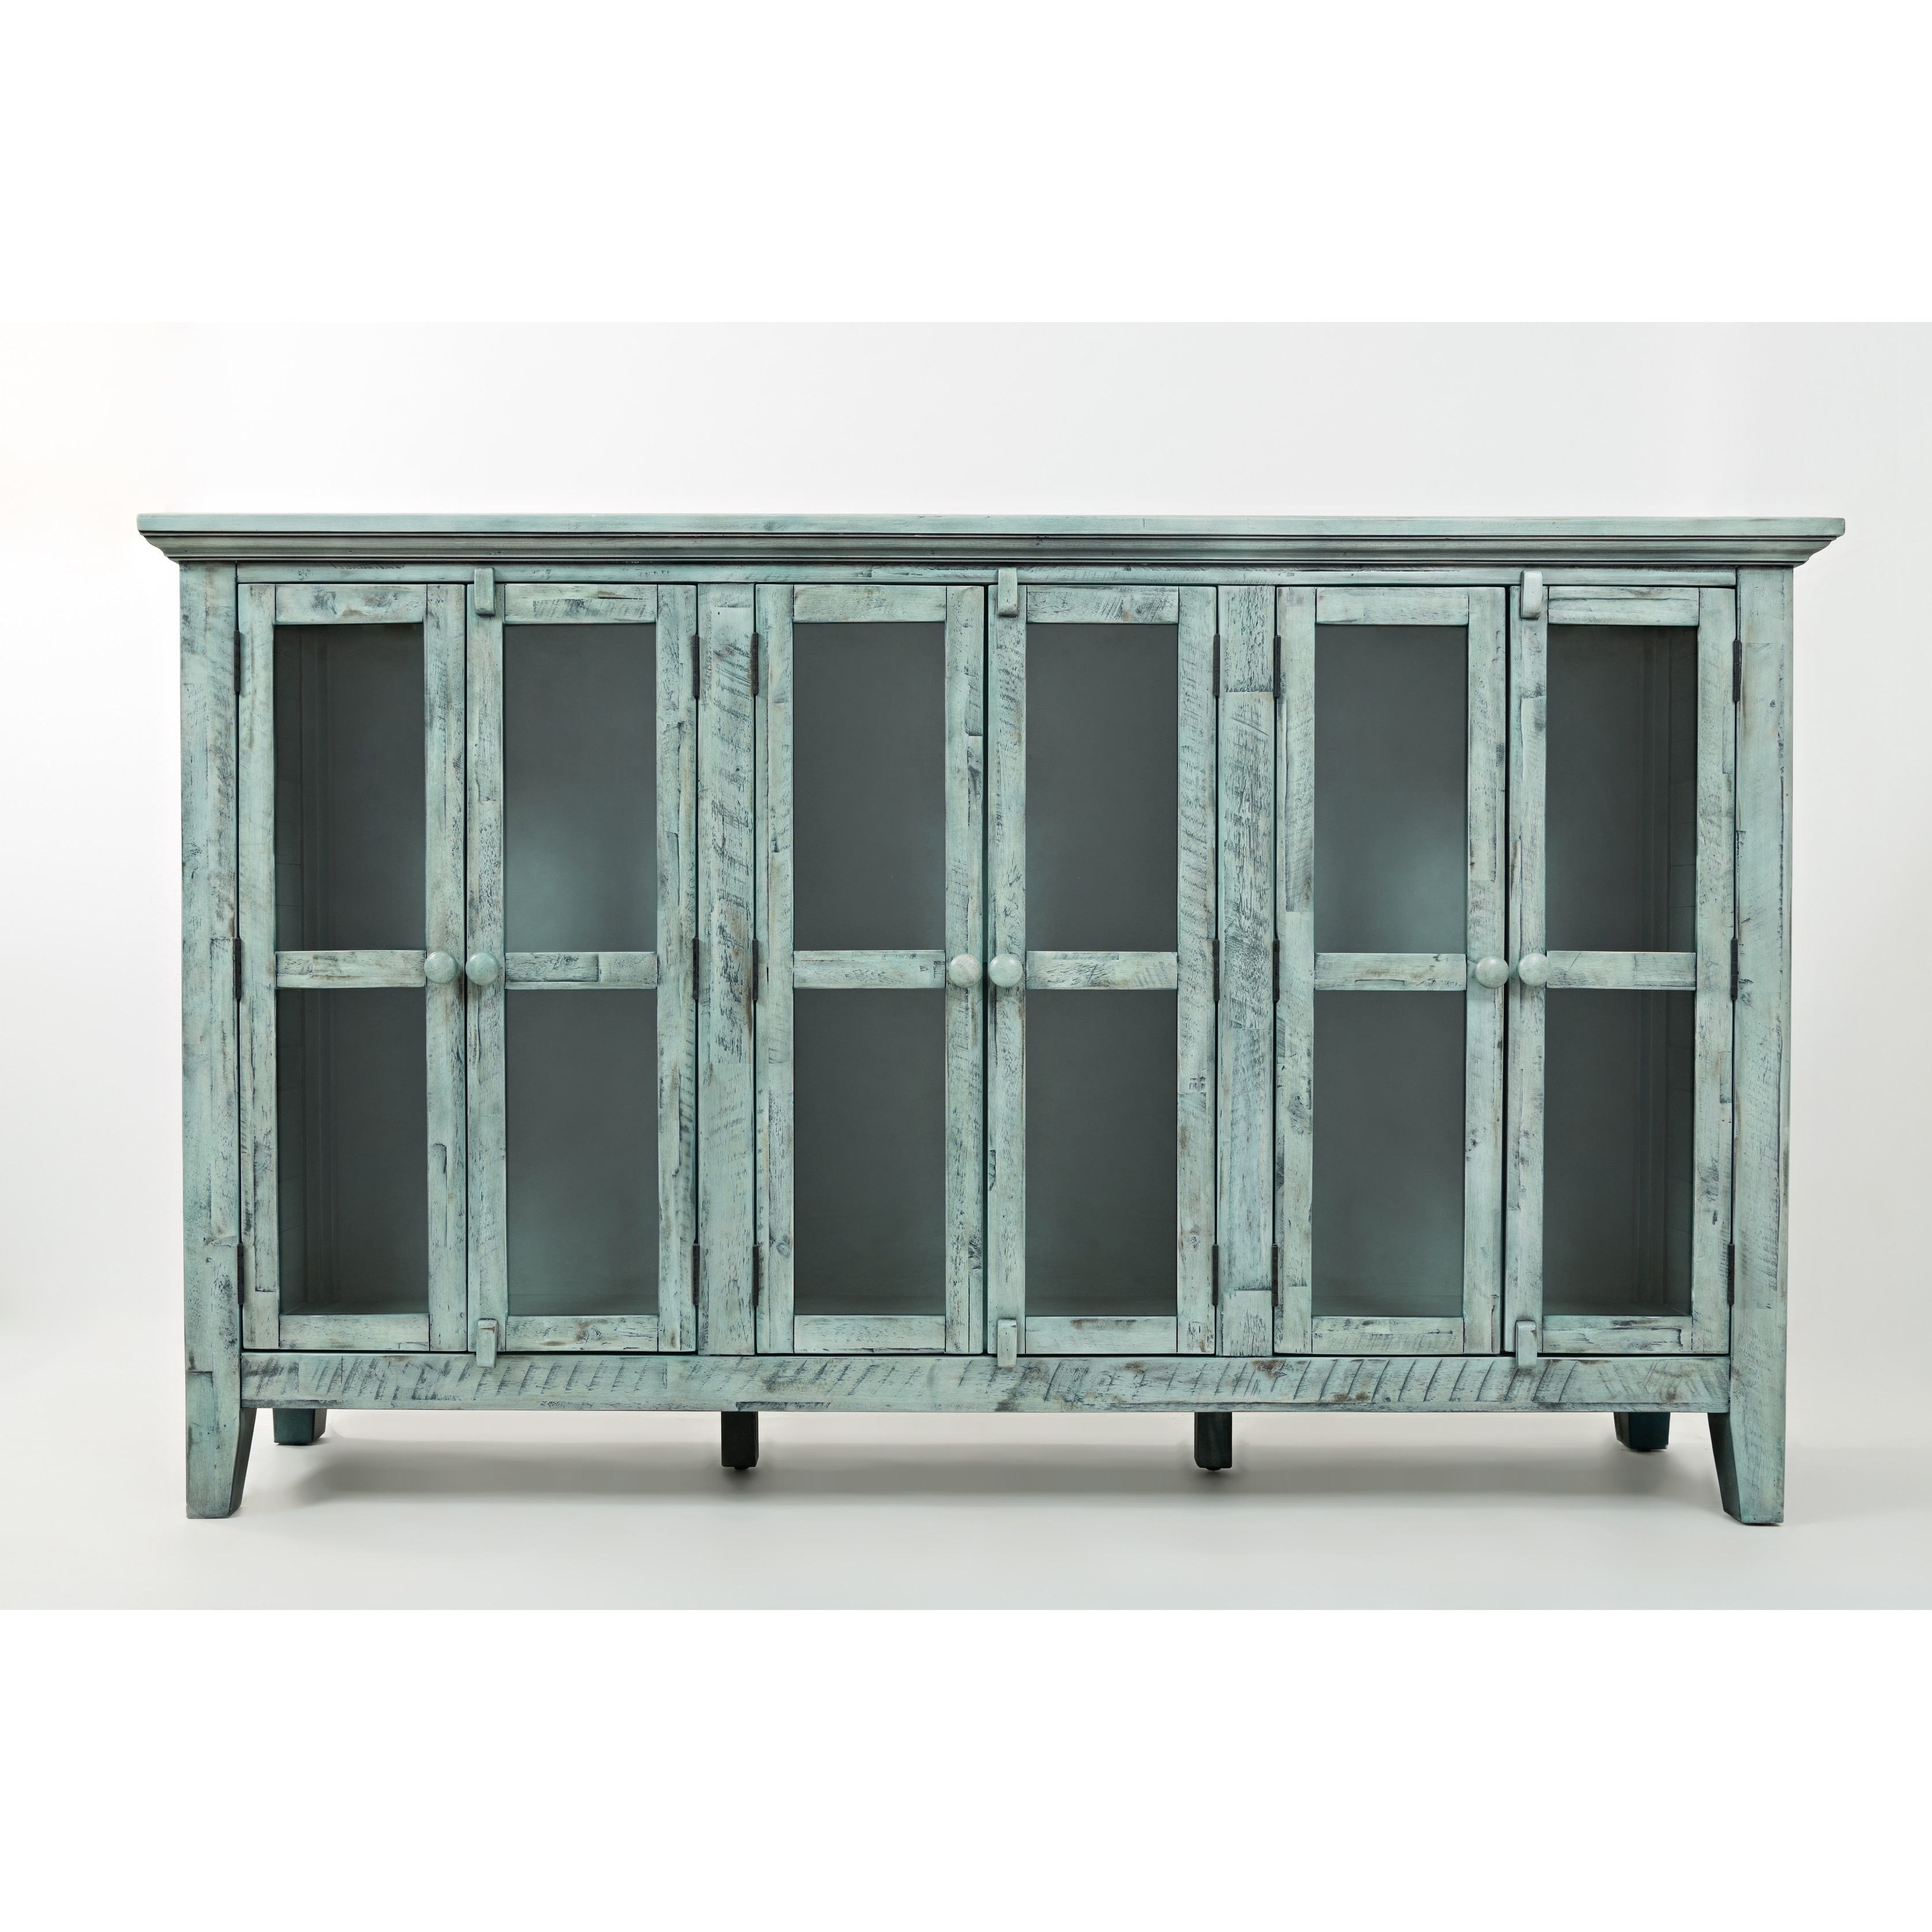 Shop wood accent cabinet with 6 doors in distressed finish blue on sale free shipping today overstock com 23503651